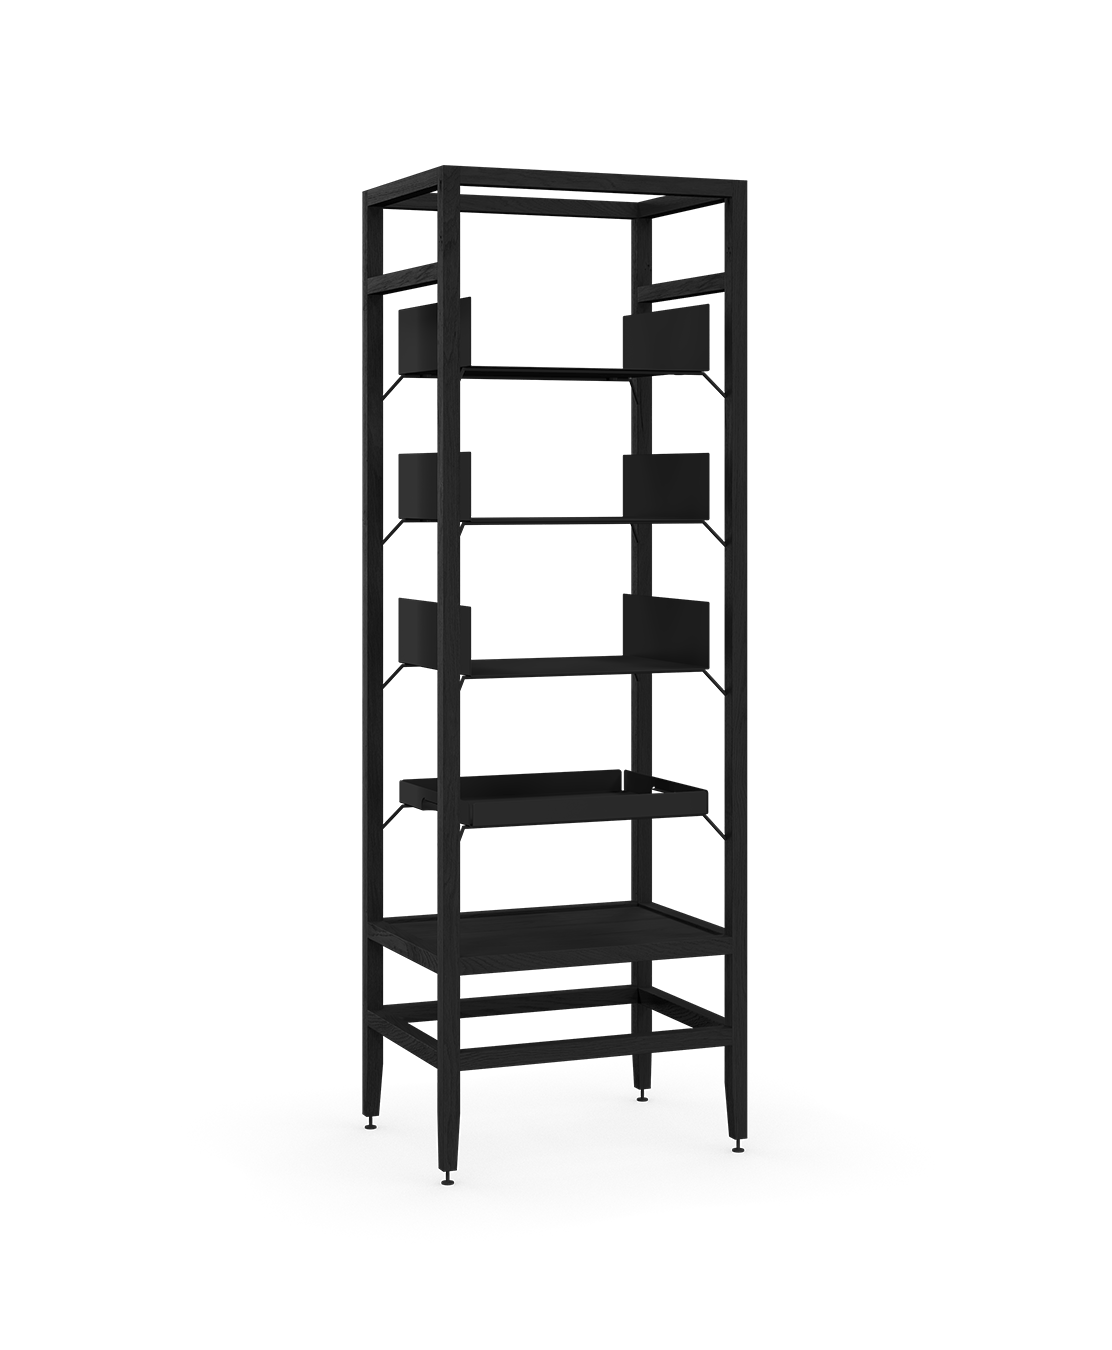 coquo volitare midnight black stained oak solid wood modular 3 shelves 1 removable tray storage tall bookcase shelving unit 24 inch C2-S-2418-0002-BK